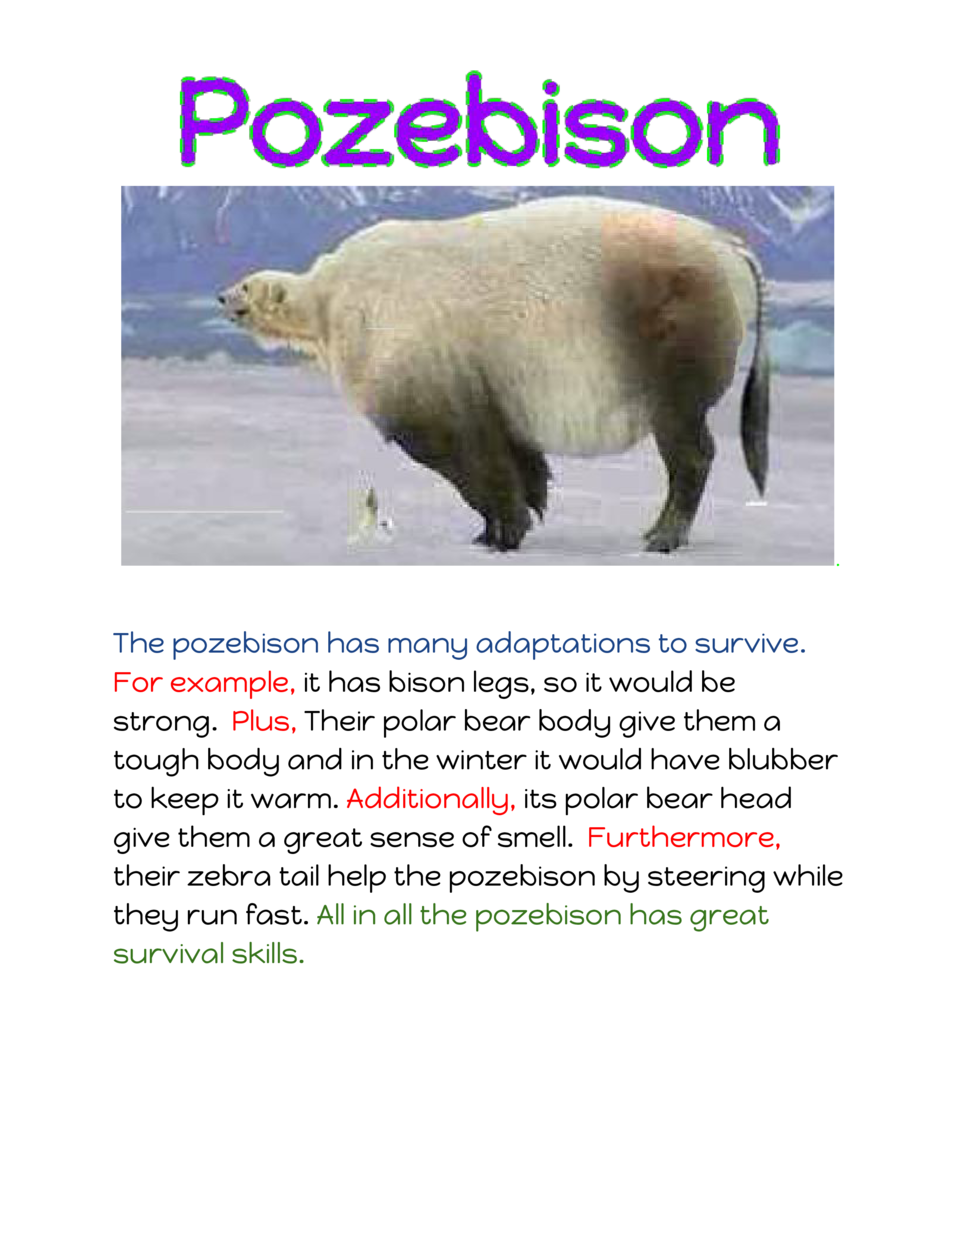 .       The pozebison has many adaptations to survive. For example,    has bison legs, so it would be it     strong.     P...